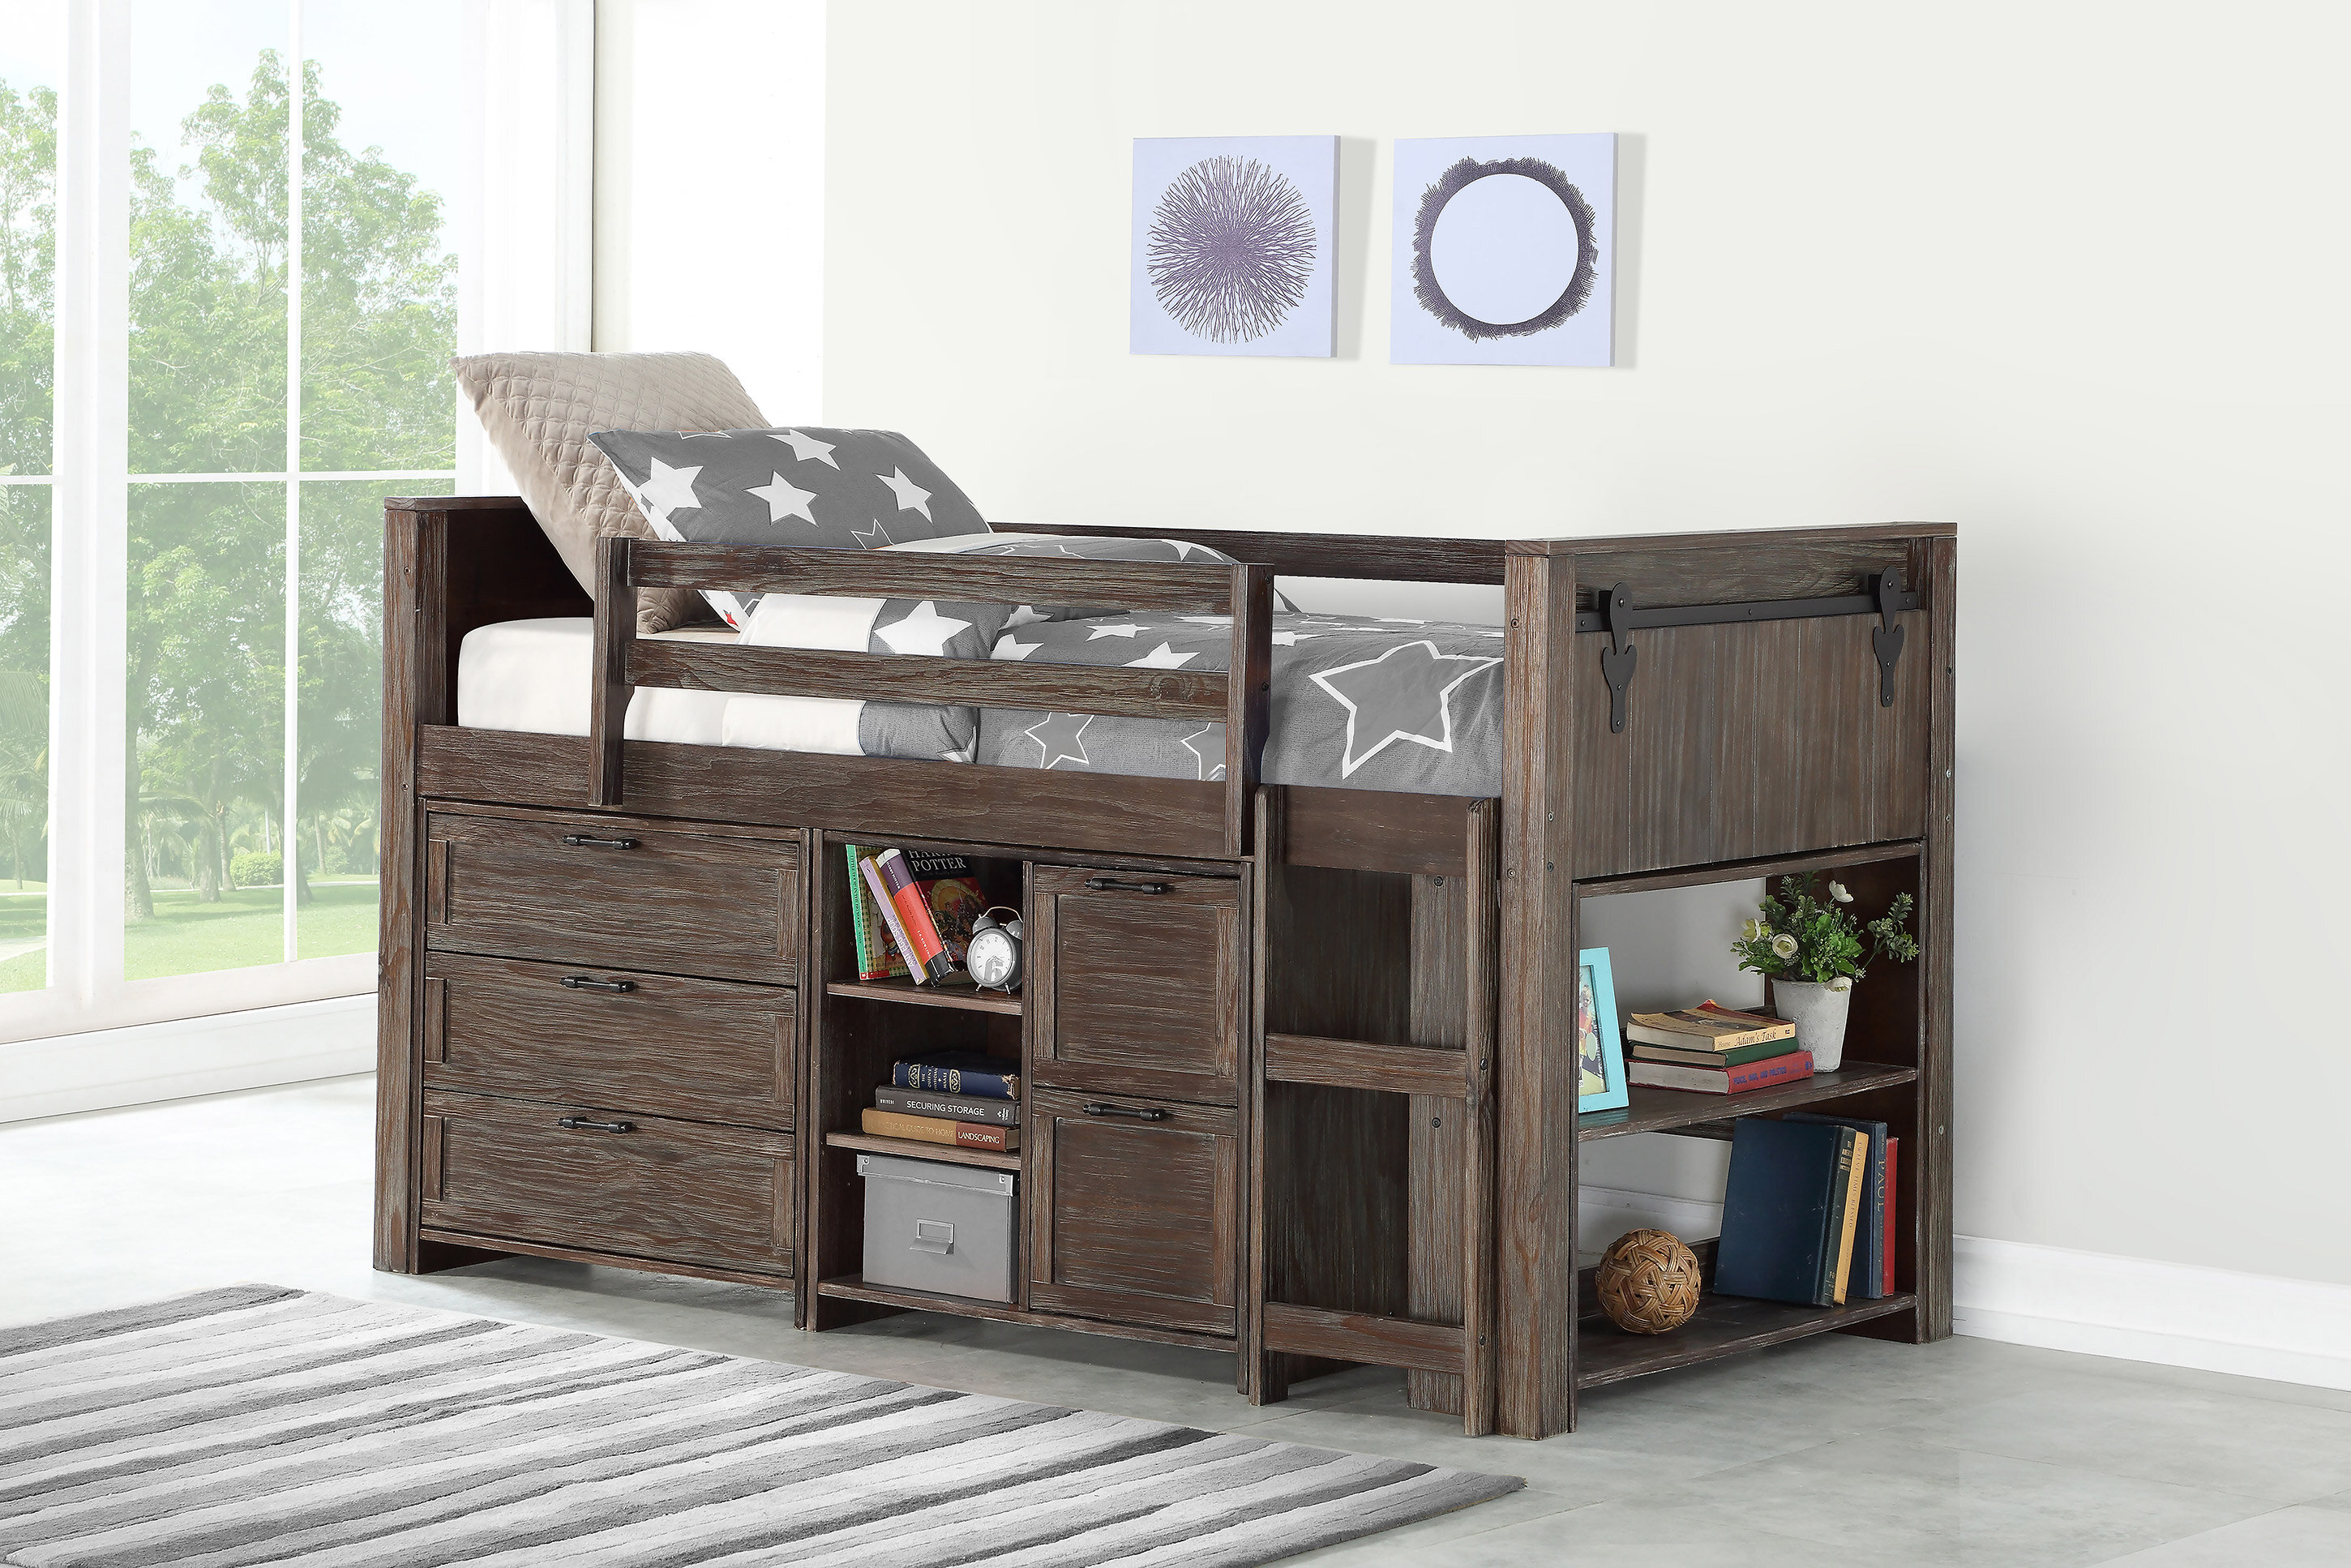 Harriet Bee Ivanna Twin Loft Bed With Drawers And Bookcase Wayfair